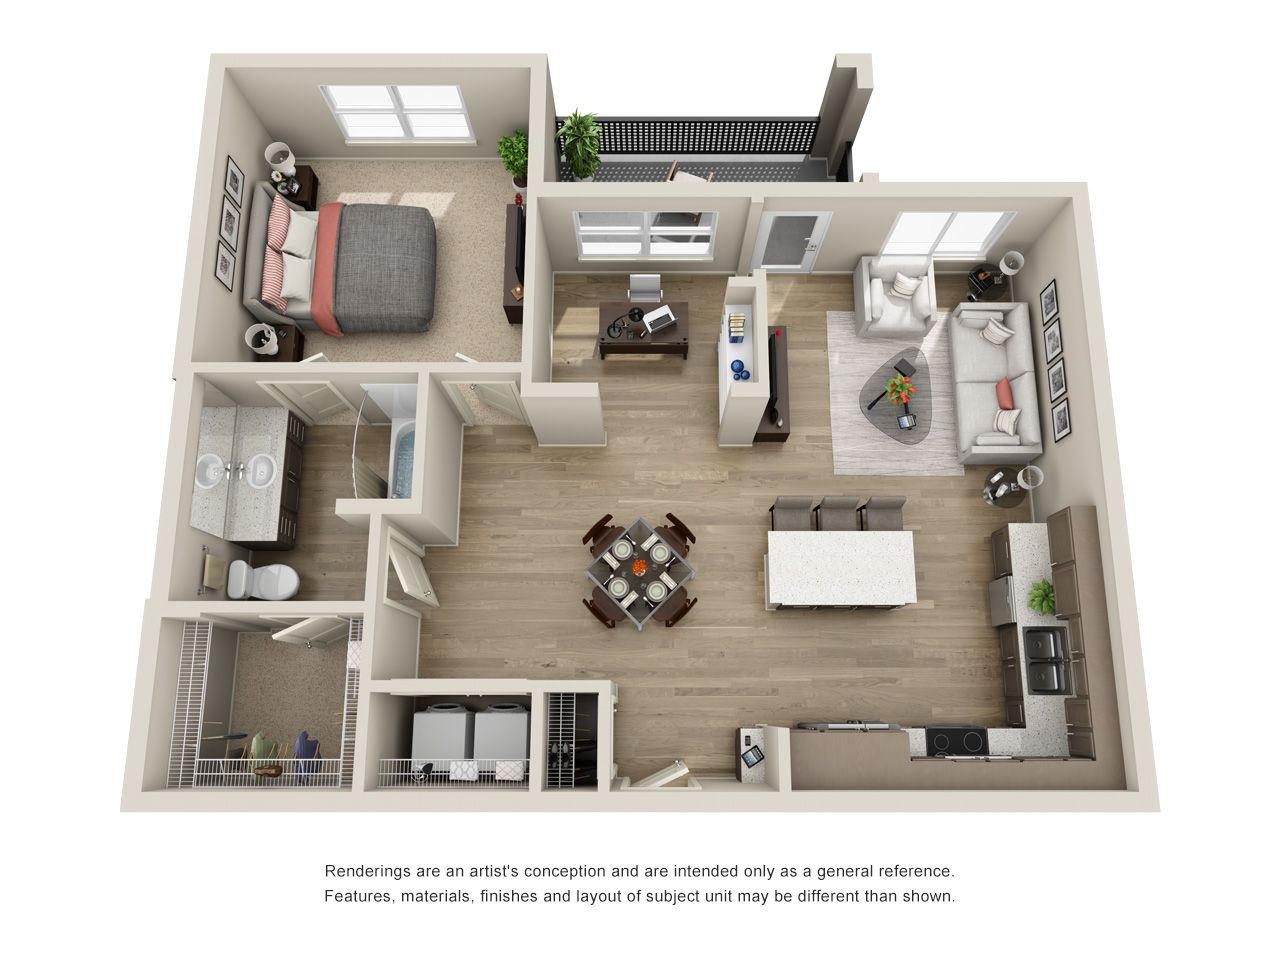 A5 1 Bedroom Den 947 Sq Ft Sims House Plans Apartment Layout Small House Design